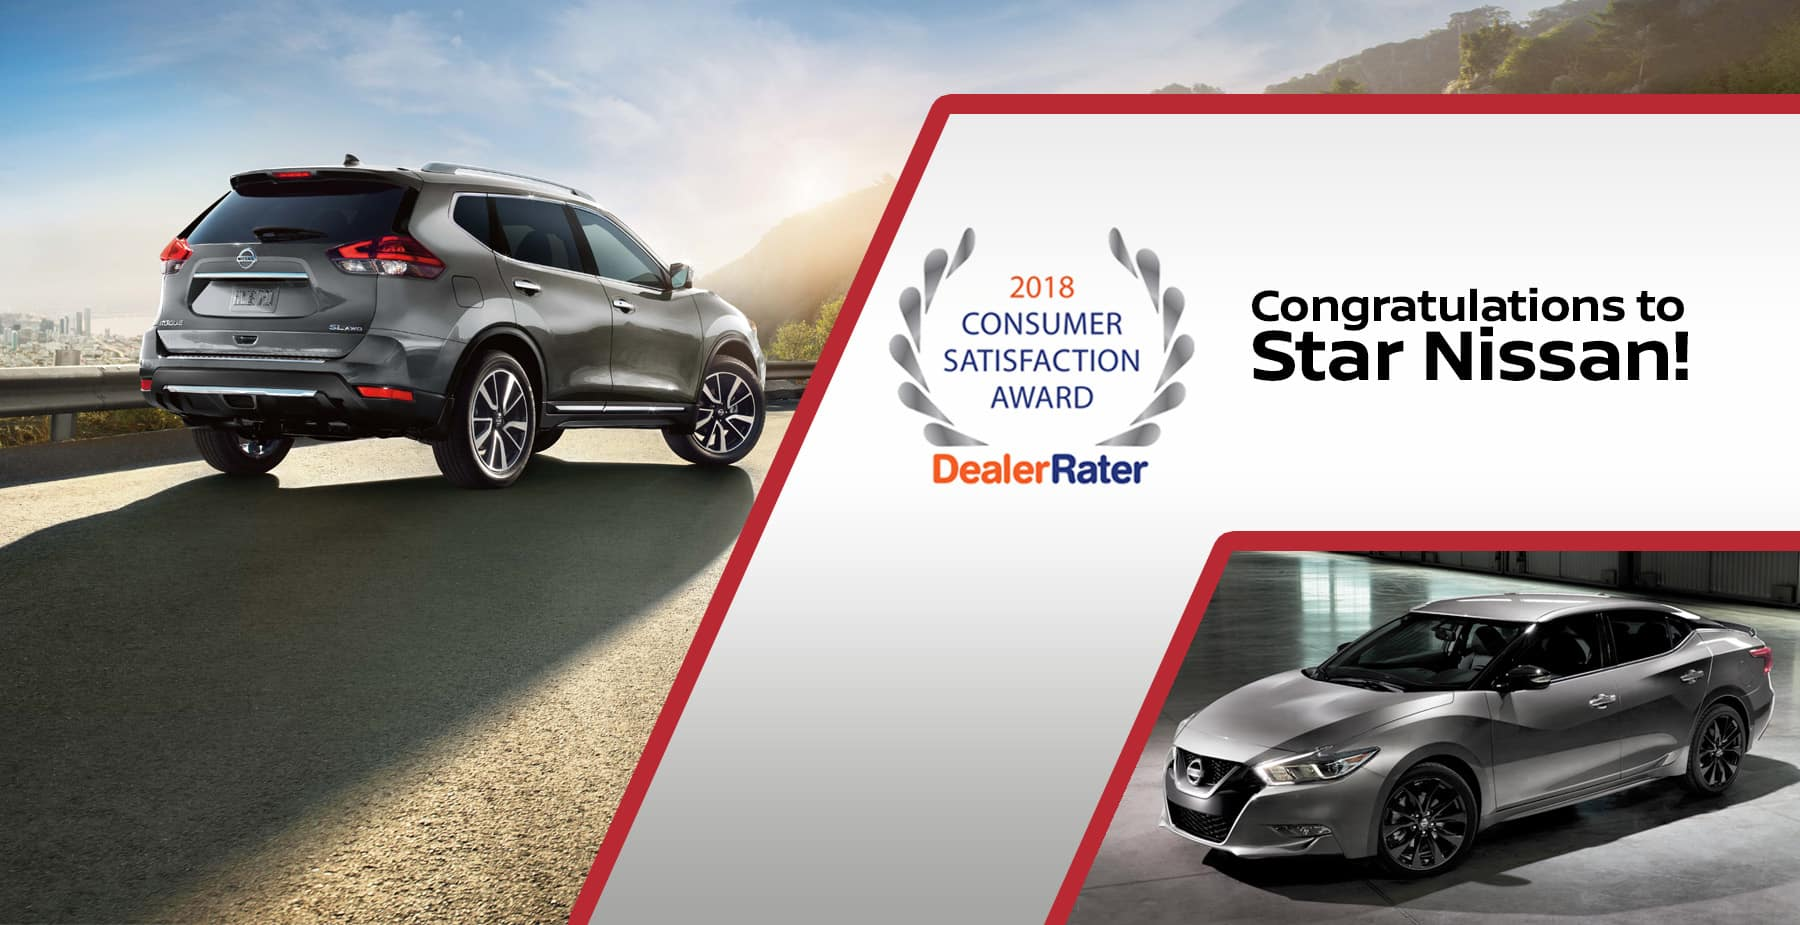 Star Nissan wins DealerRater 2018 Consumer Satisfaction Award!